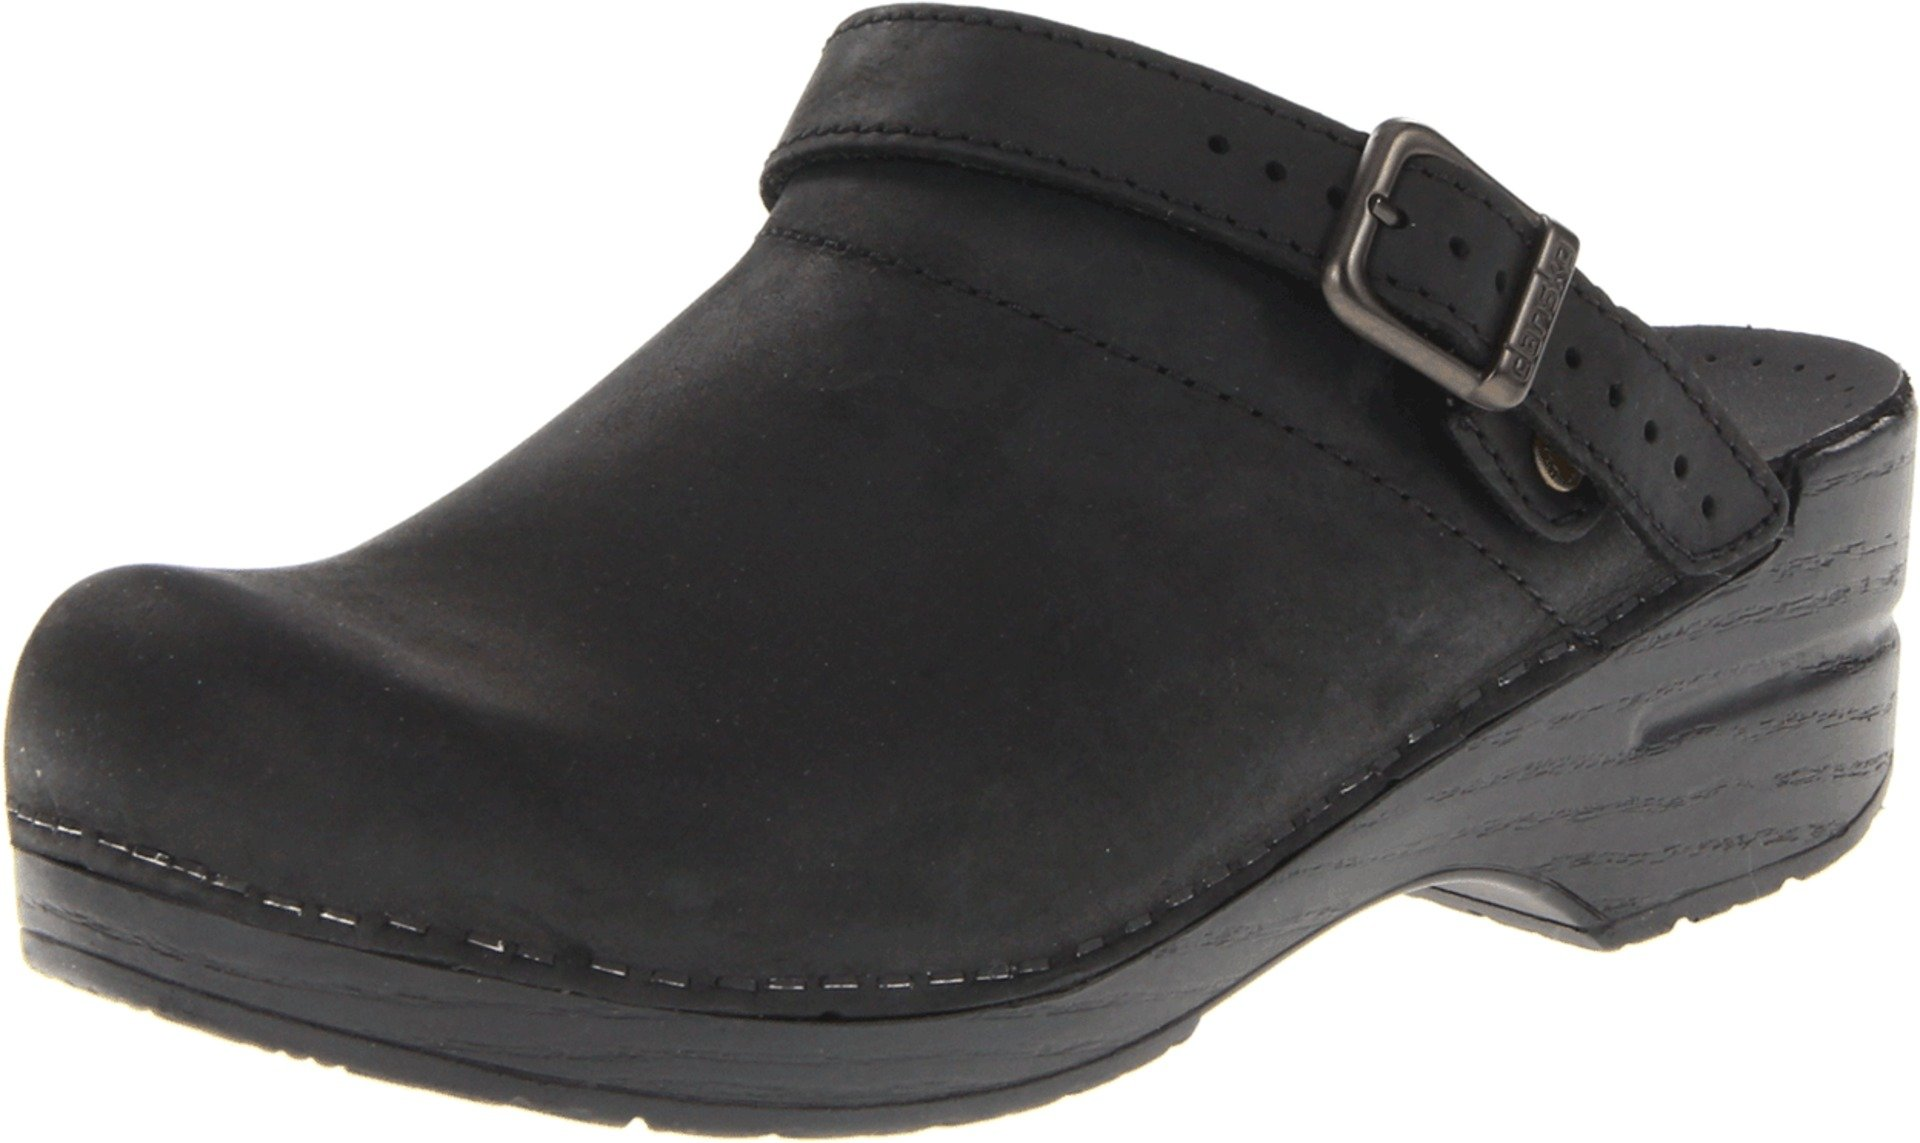 Dansko Women's Ingrid Black Oiled Leather Clogs 39 M